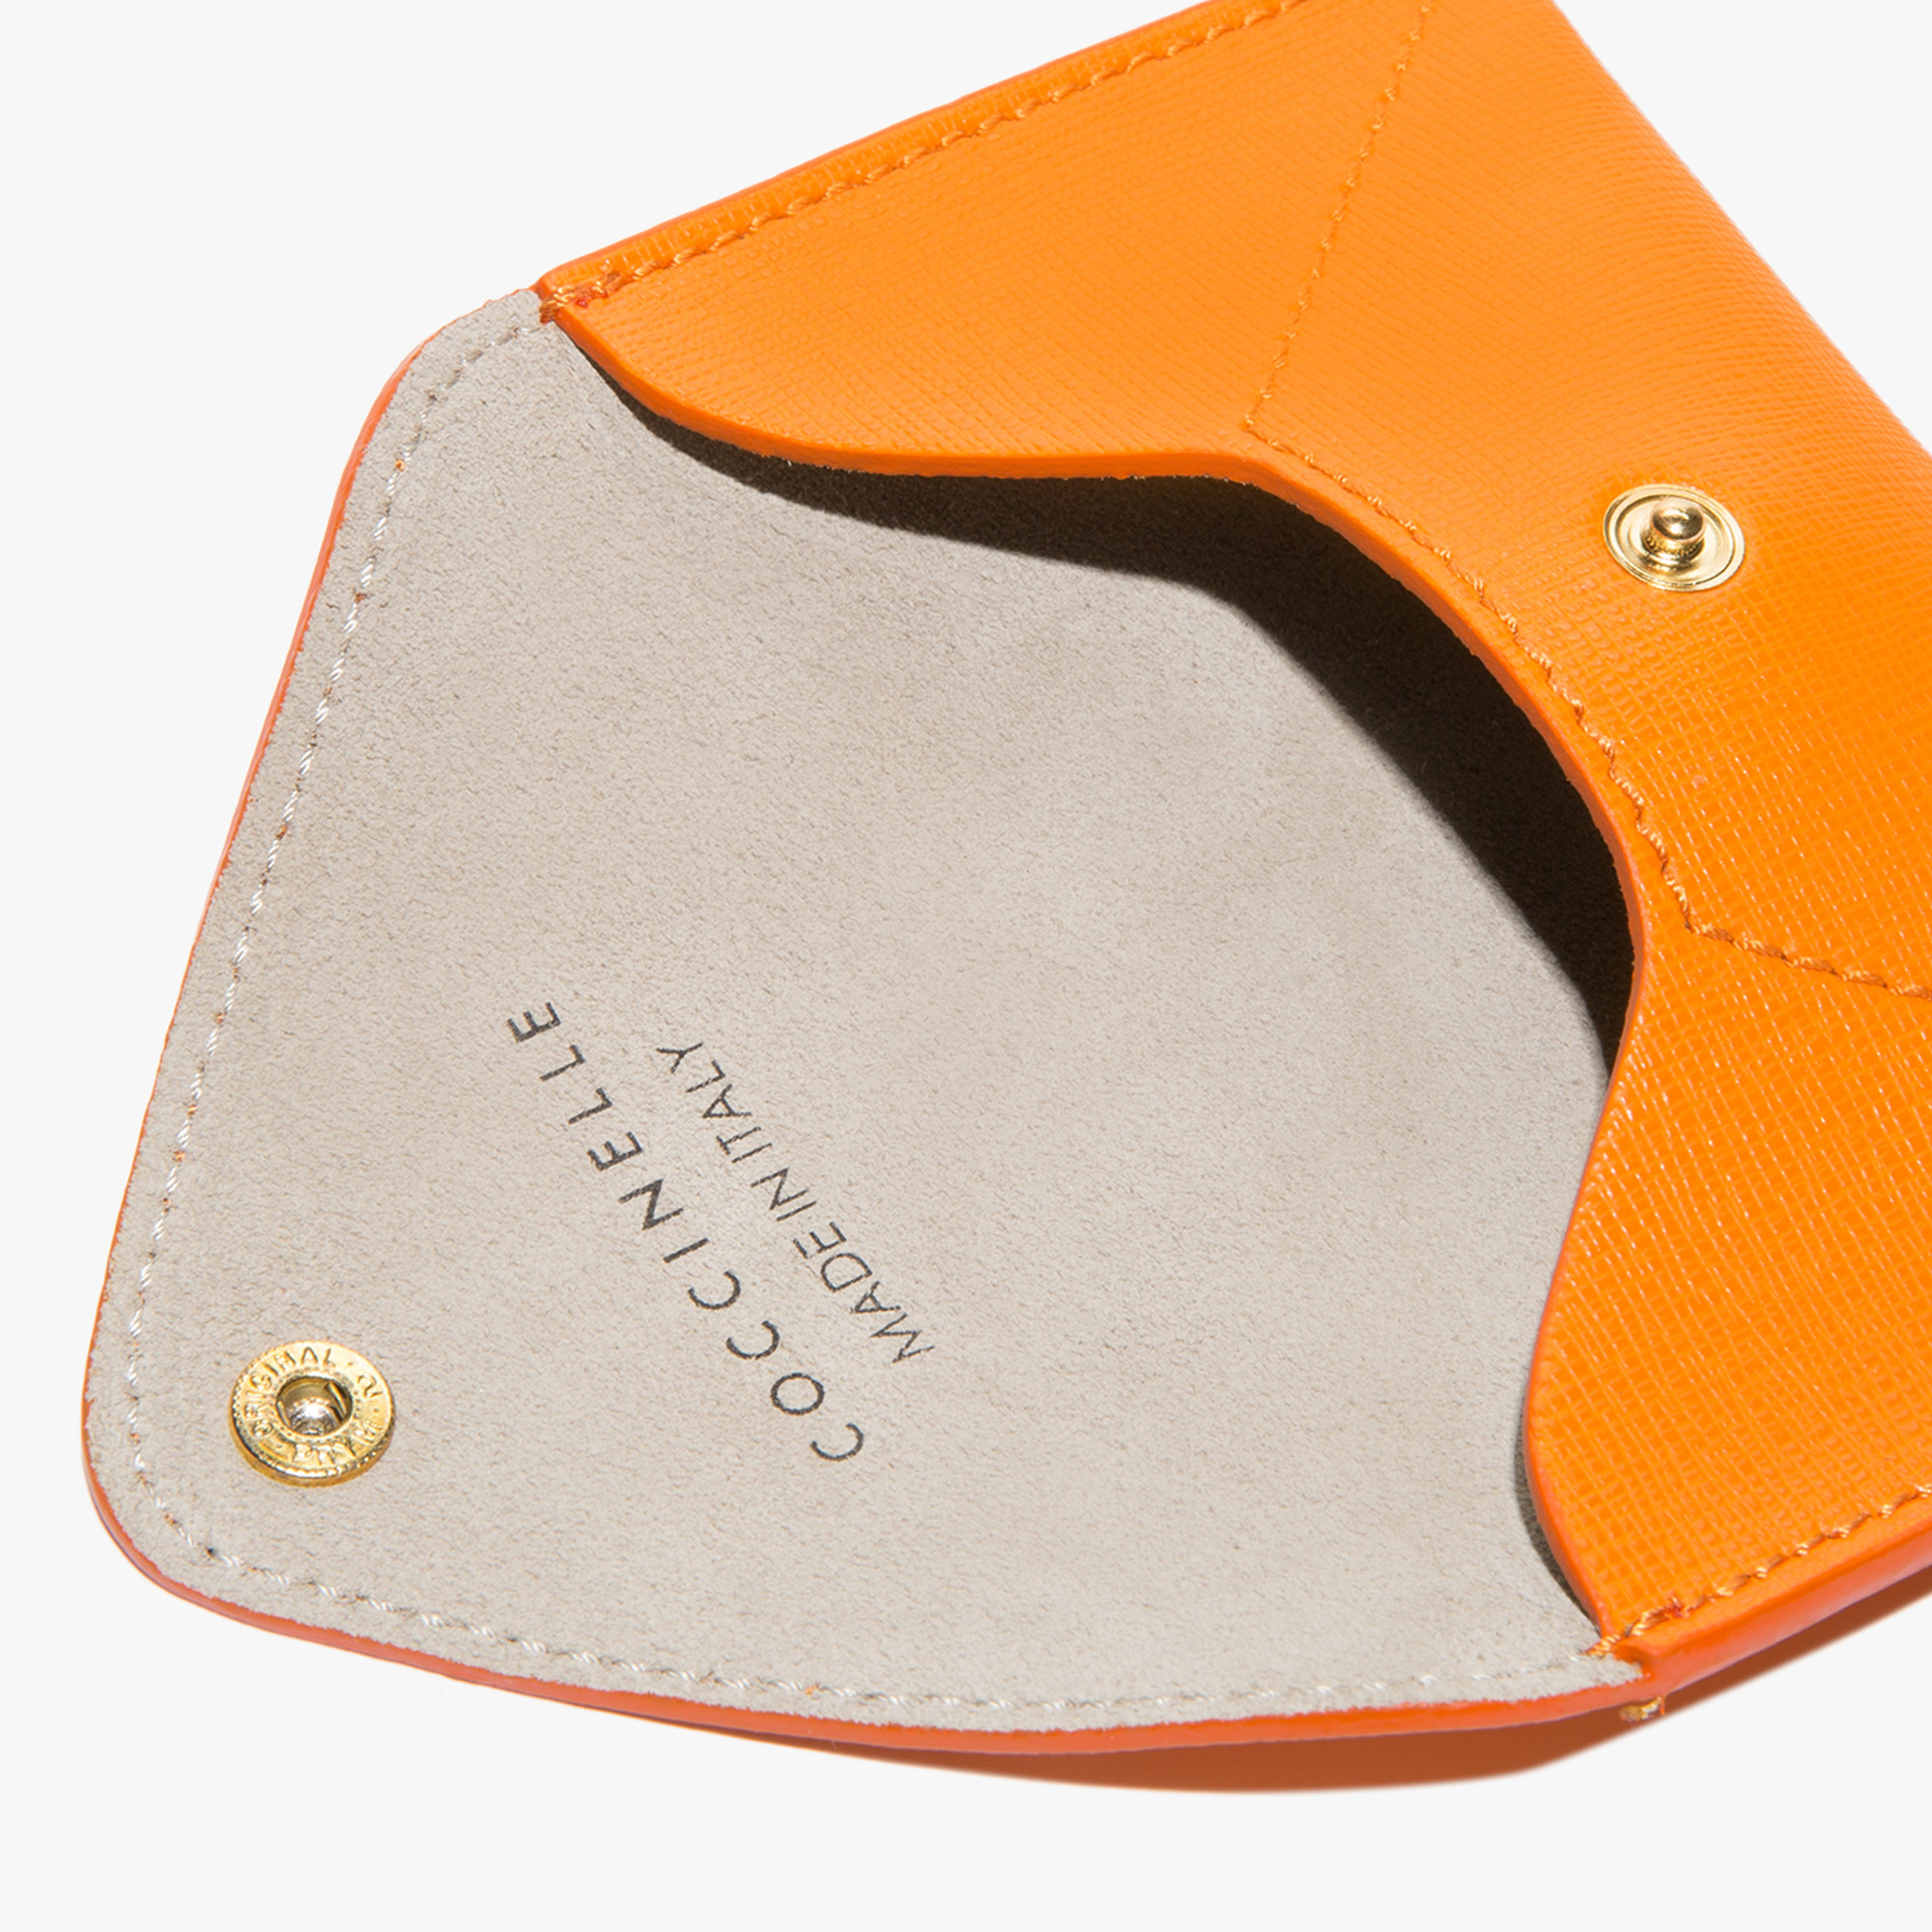 Wish in a pocket leather document holder